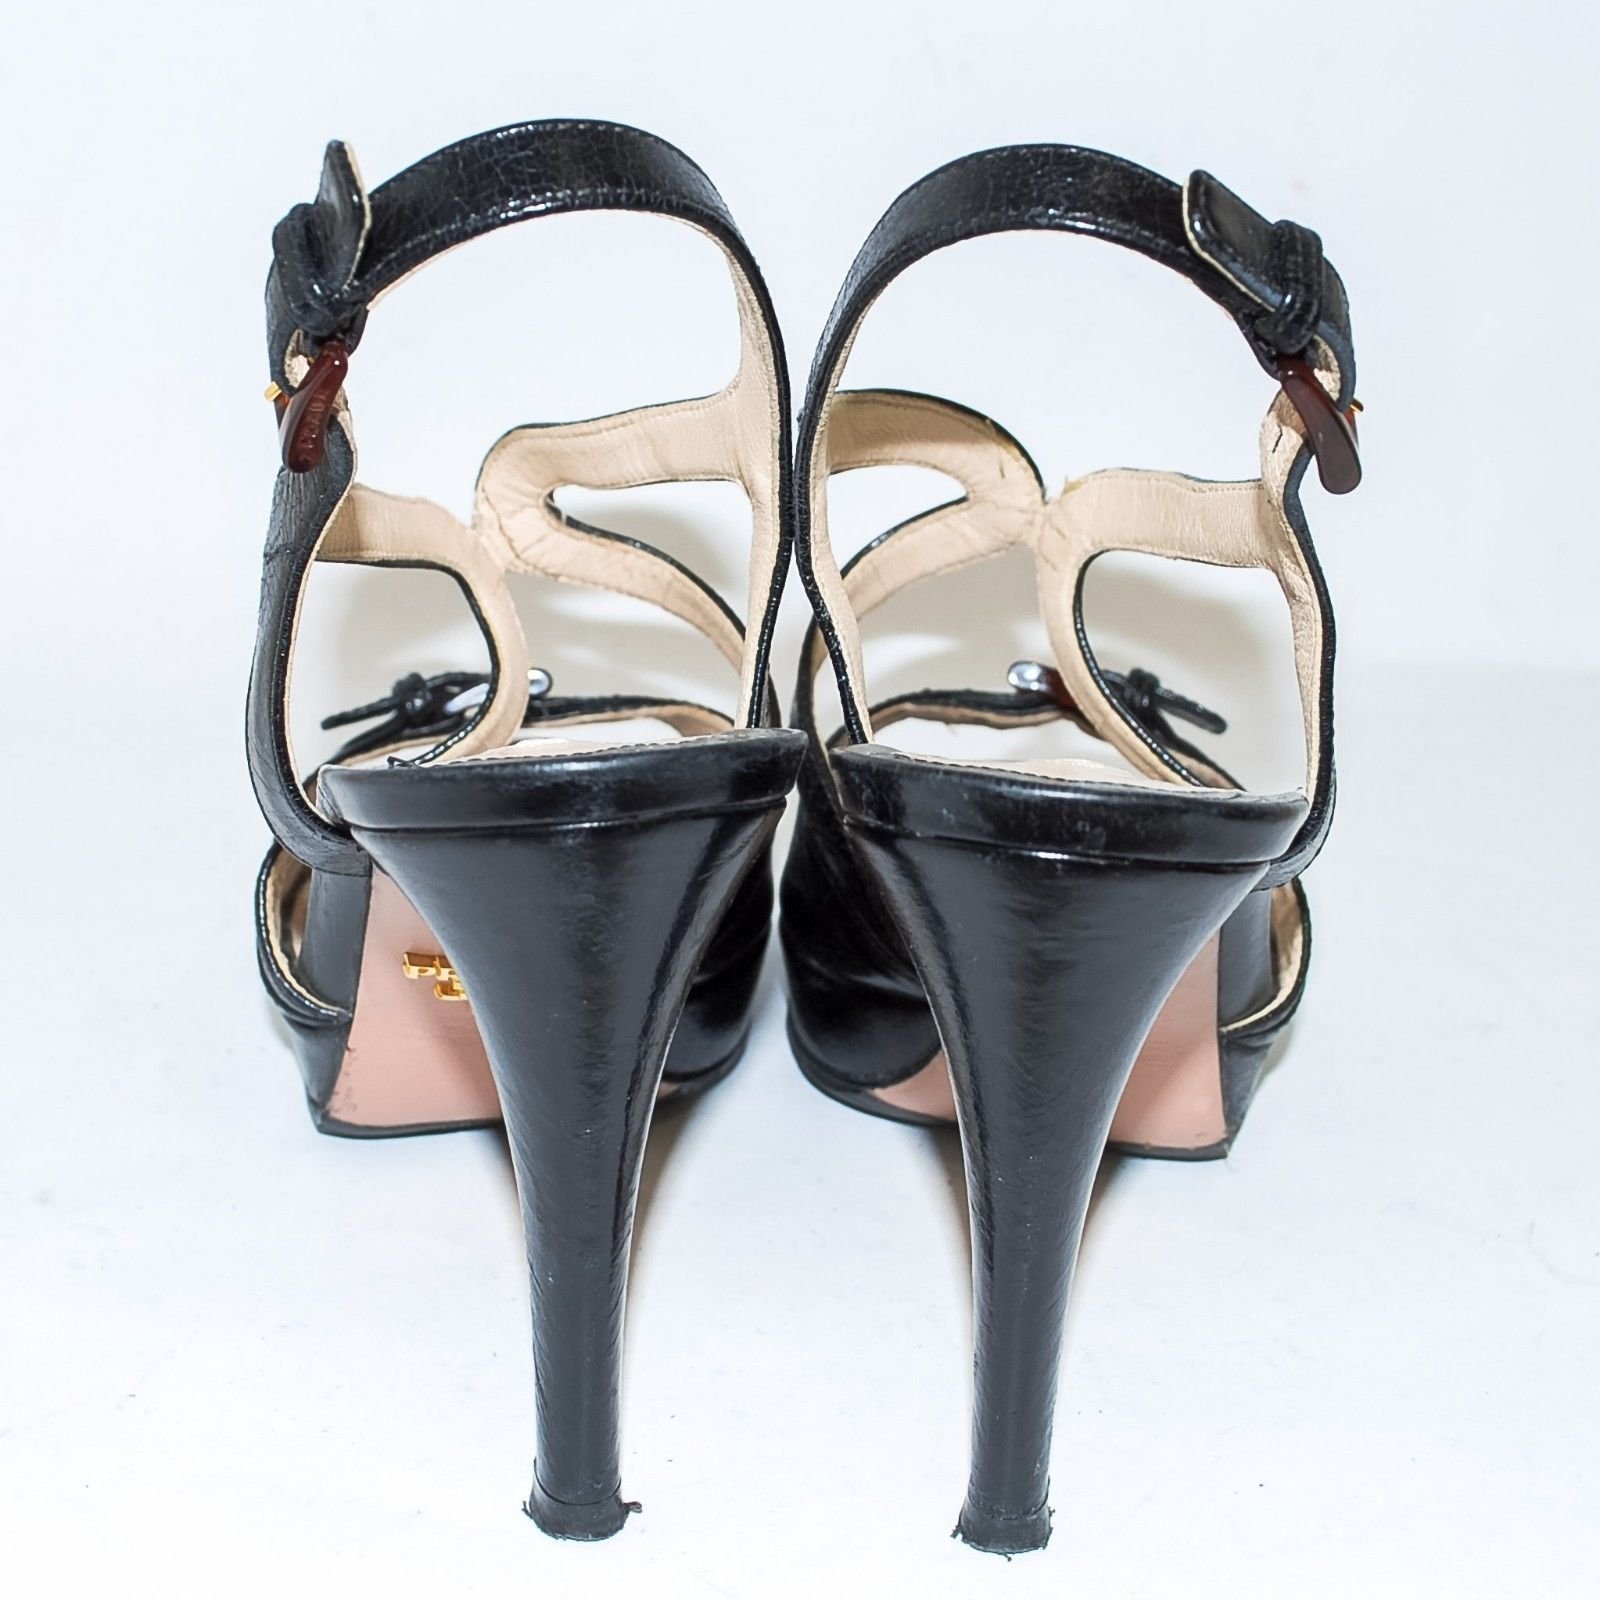 a7f193e984cb1 PRADA Black Leather High Heel Sandals Shoes and 42 similar items